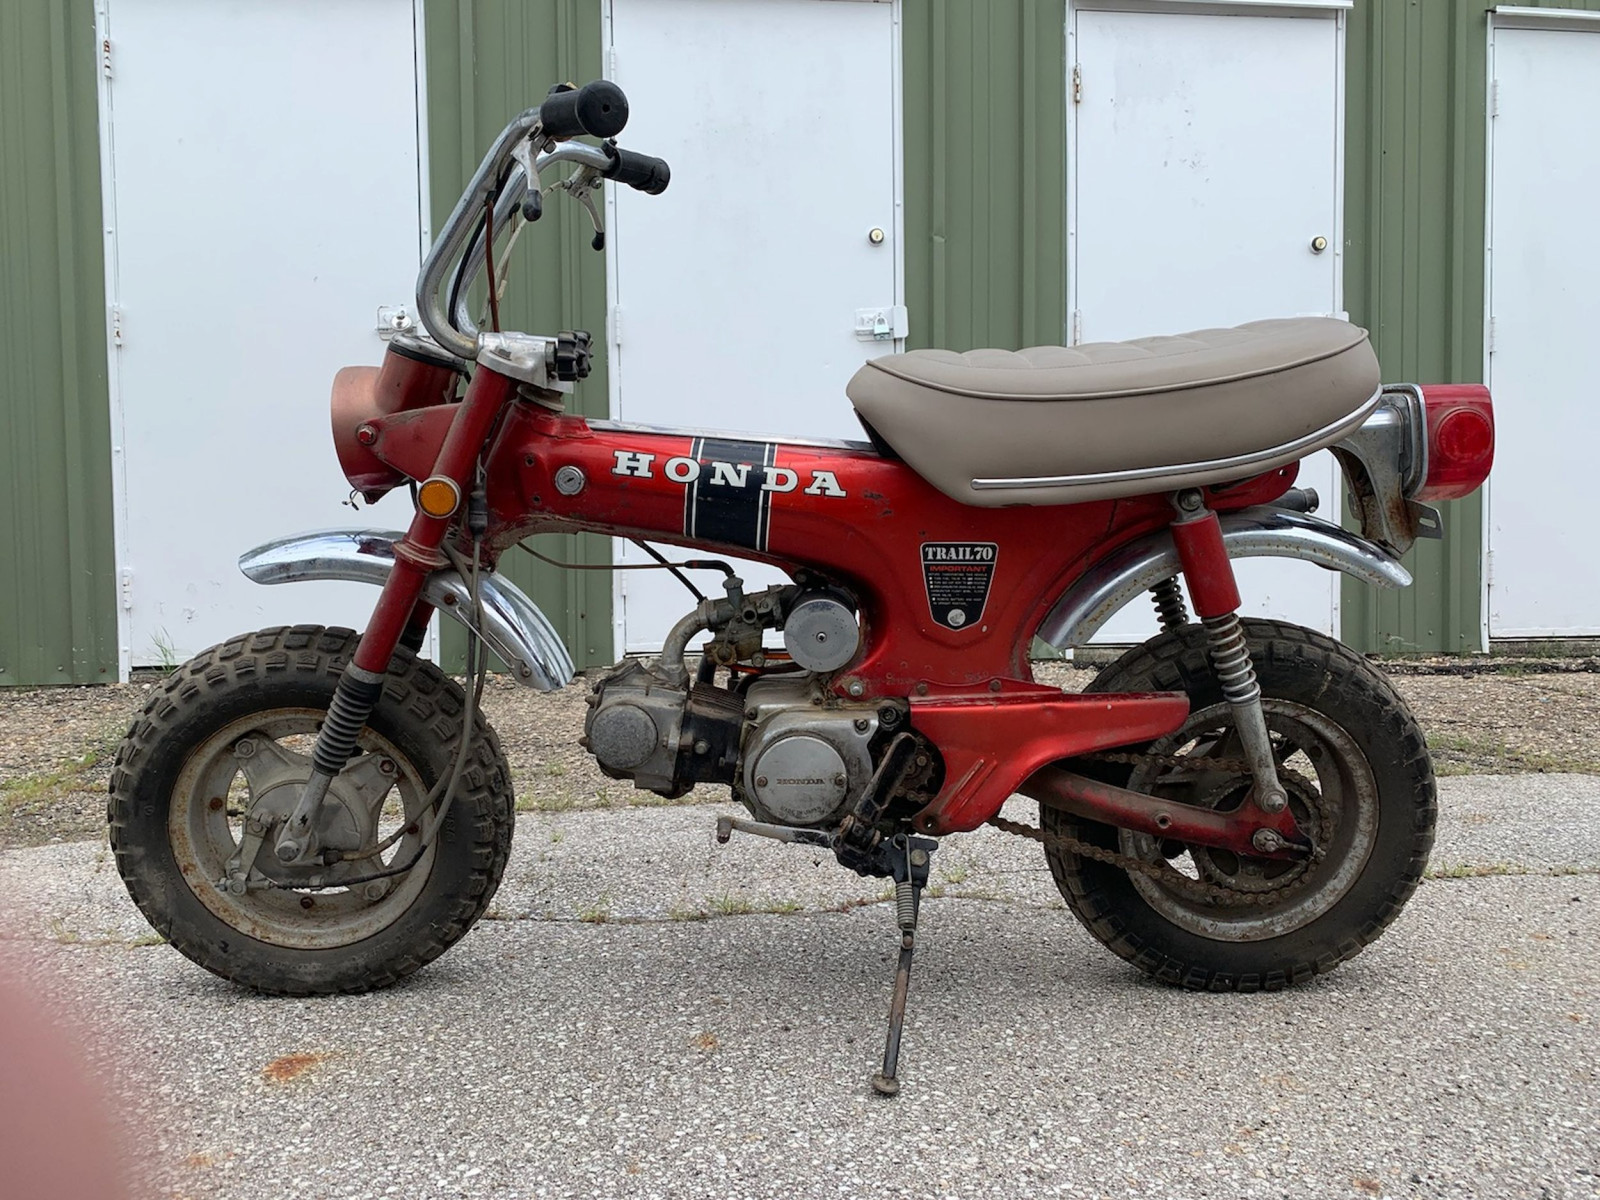 1970 Honda CT70 Motorcycle - Image 1